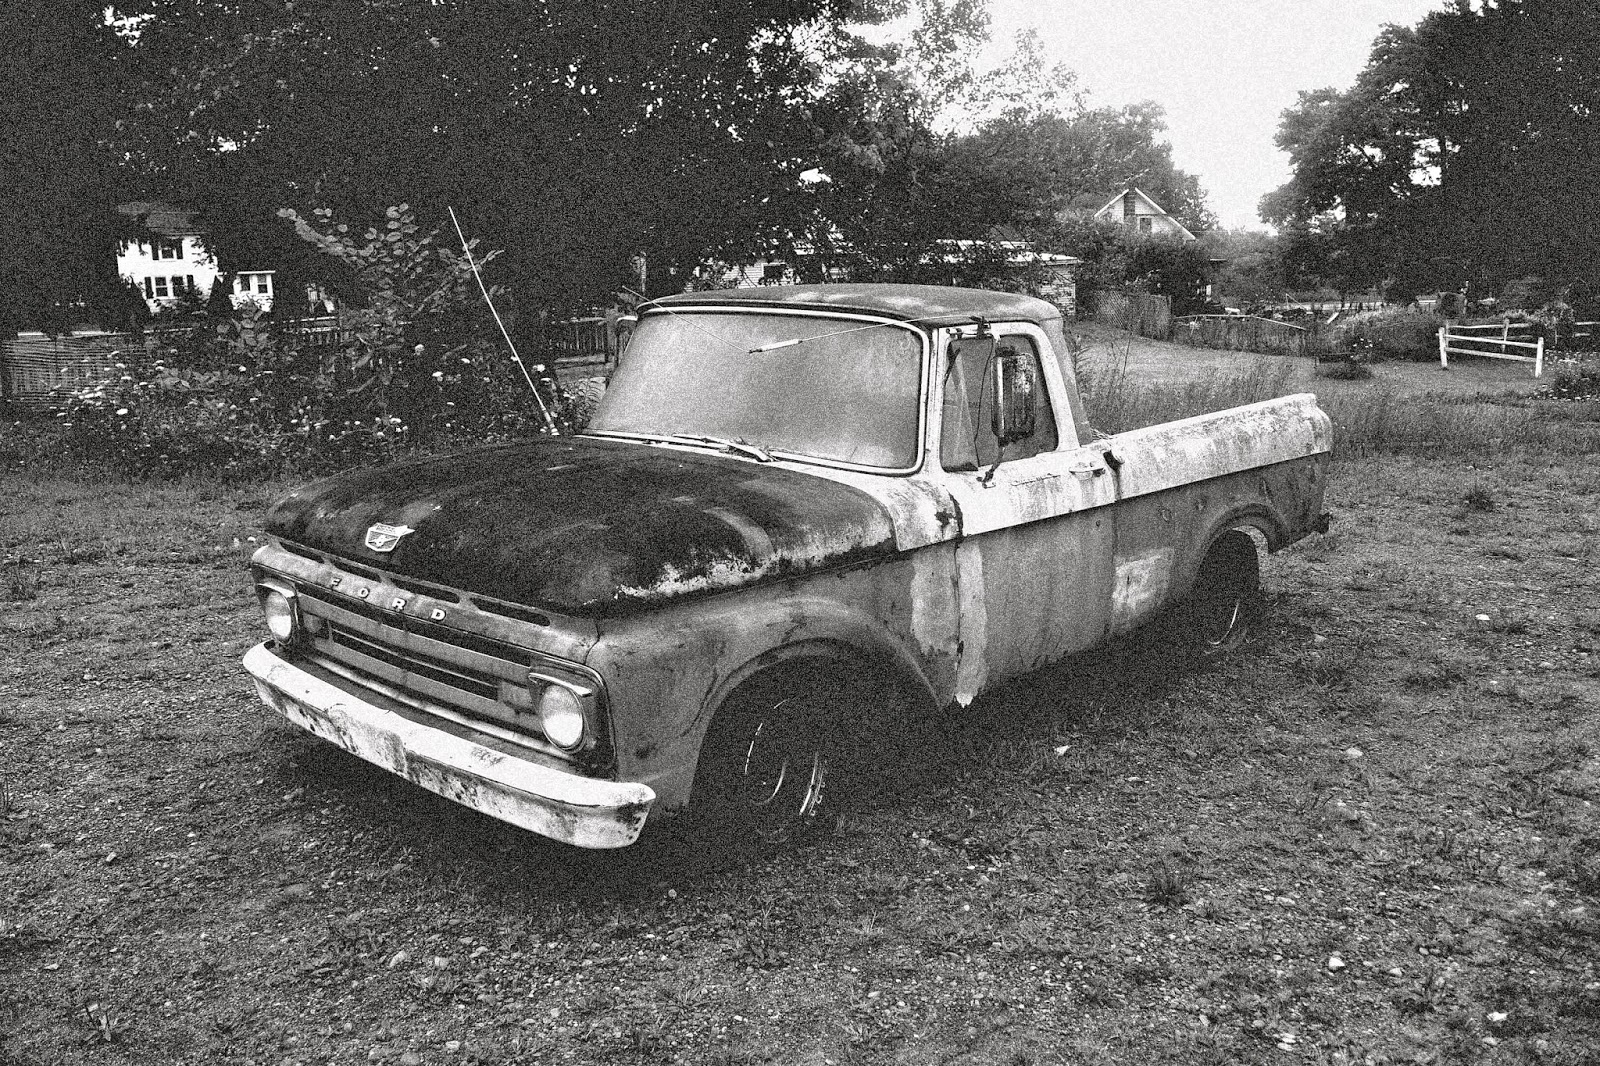 The Old Ford Pickup in B&W. | Tom The Backroads Traveller